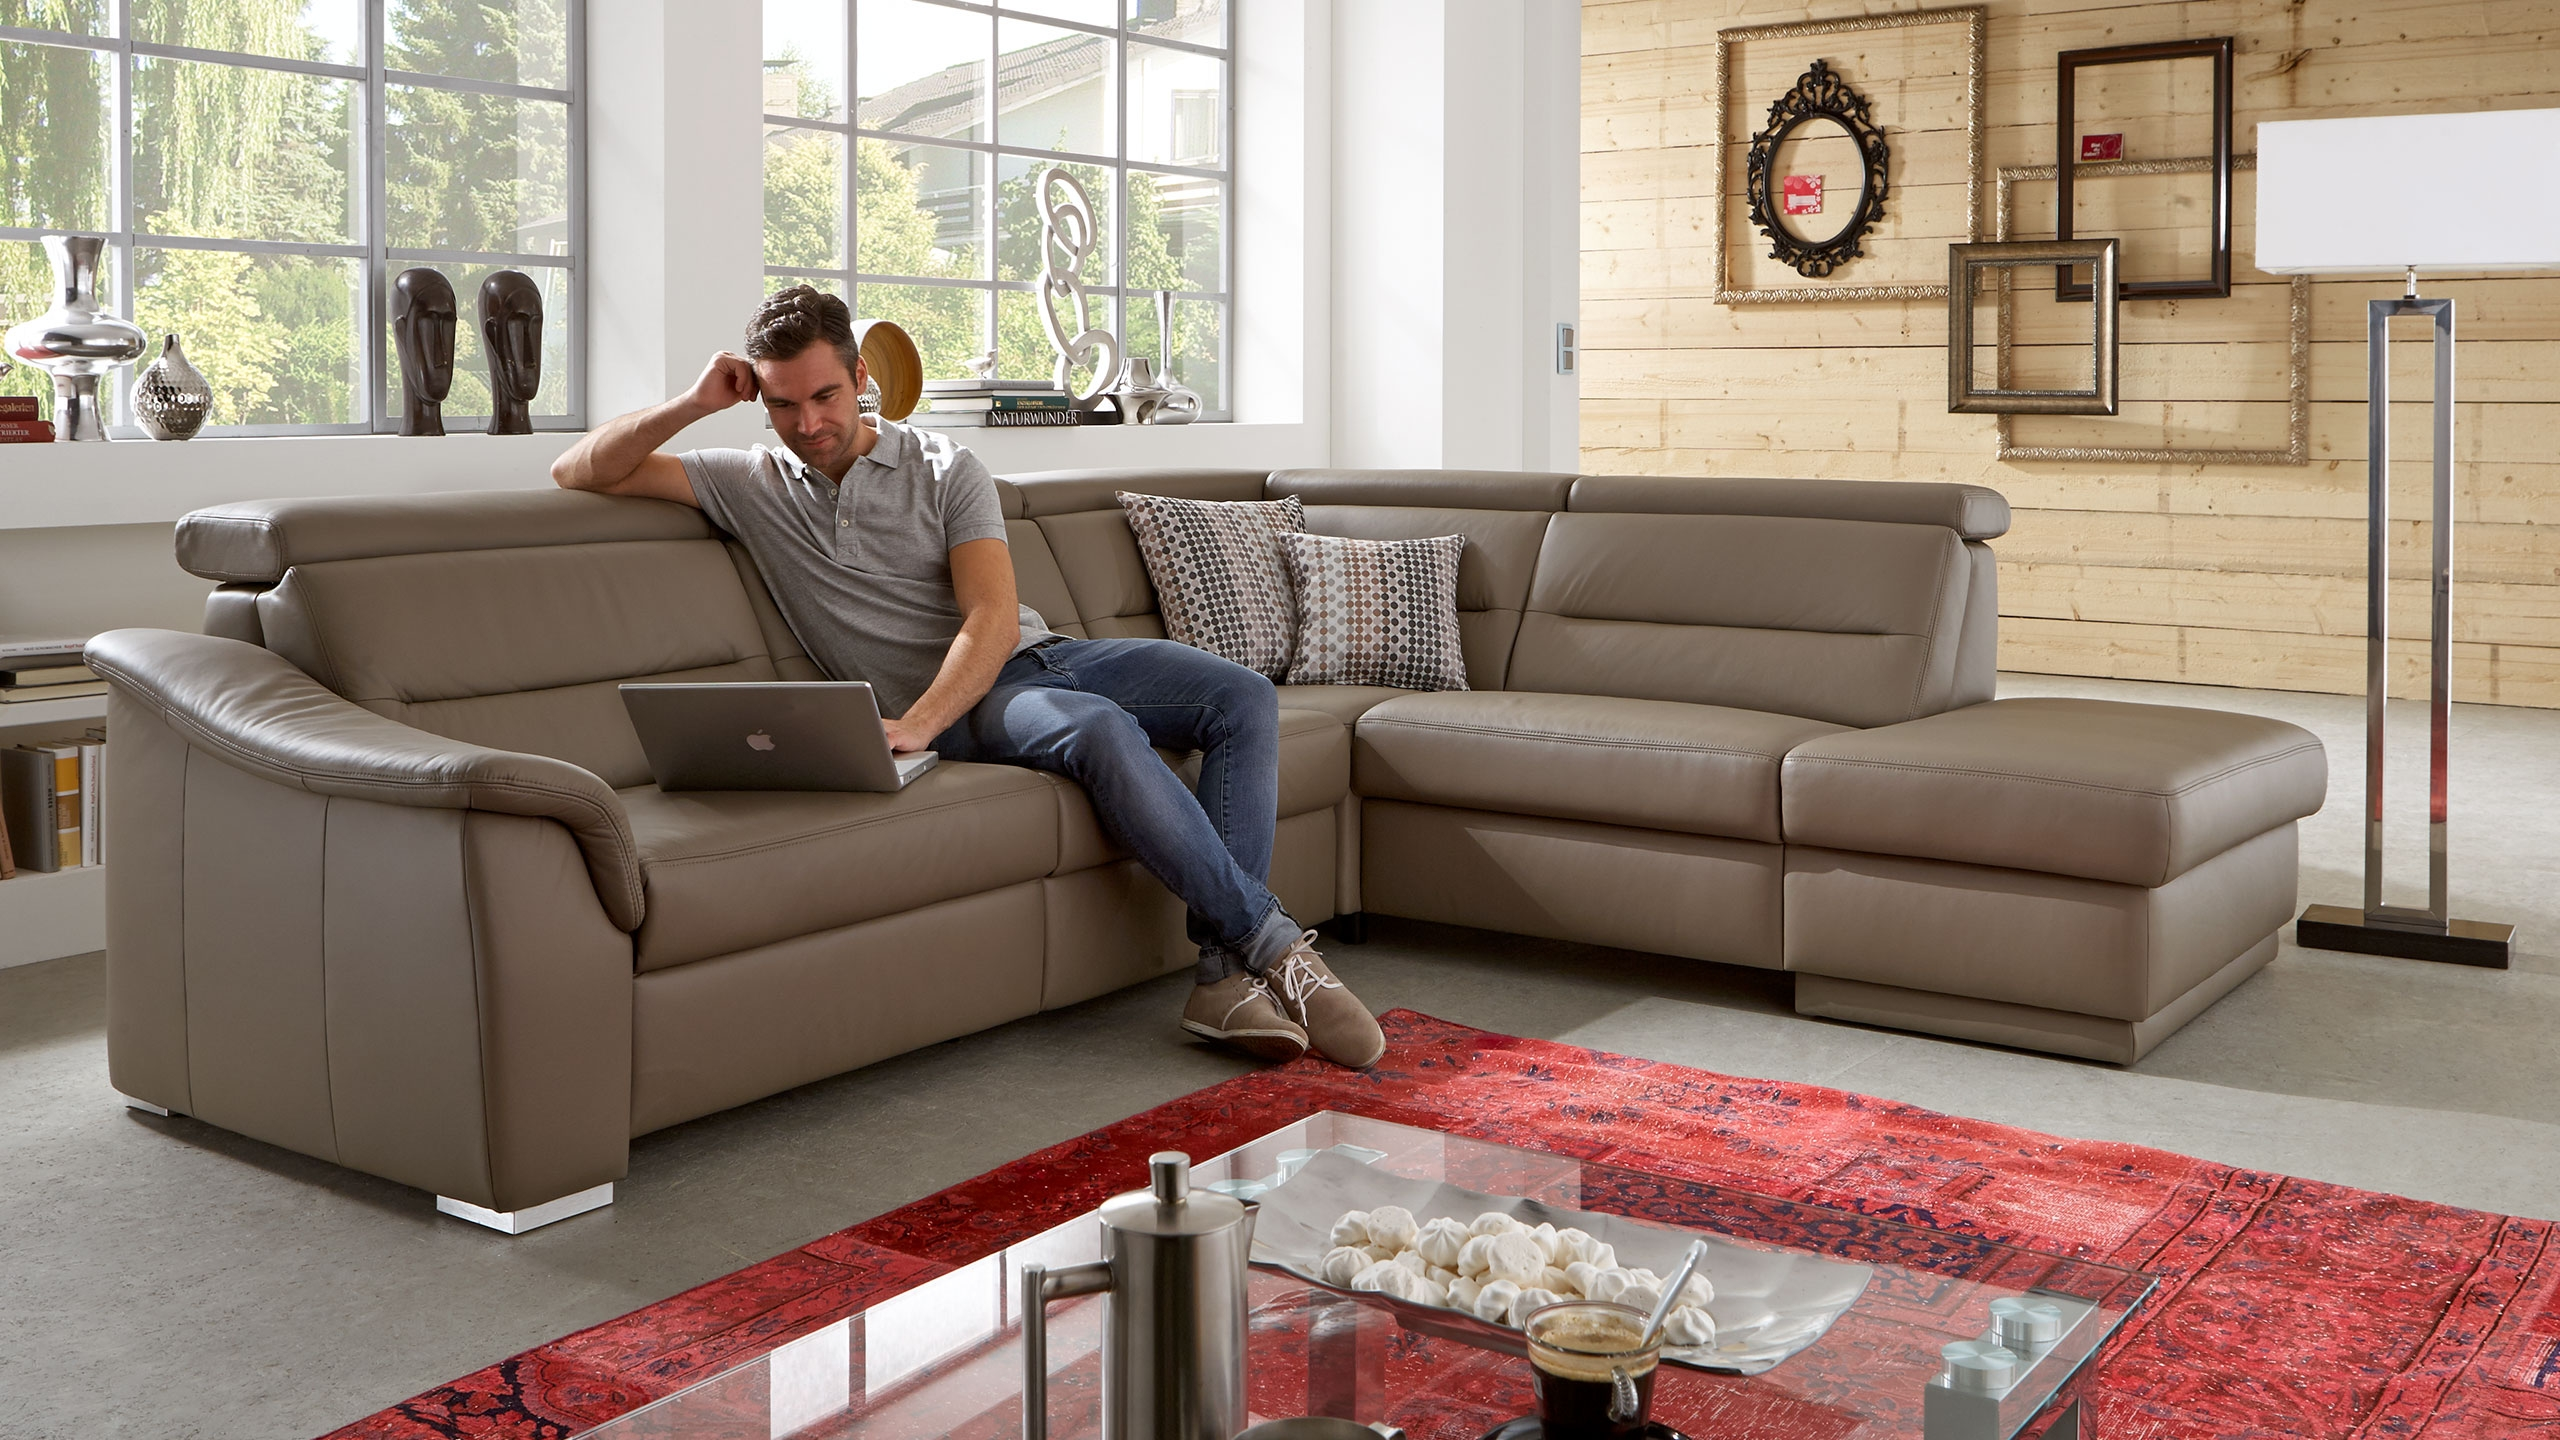 SC family/ select 1008 Ecksofa Braun